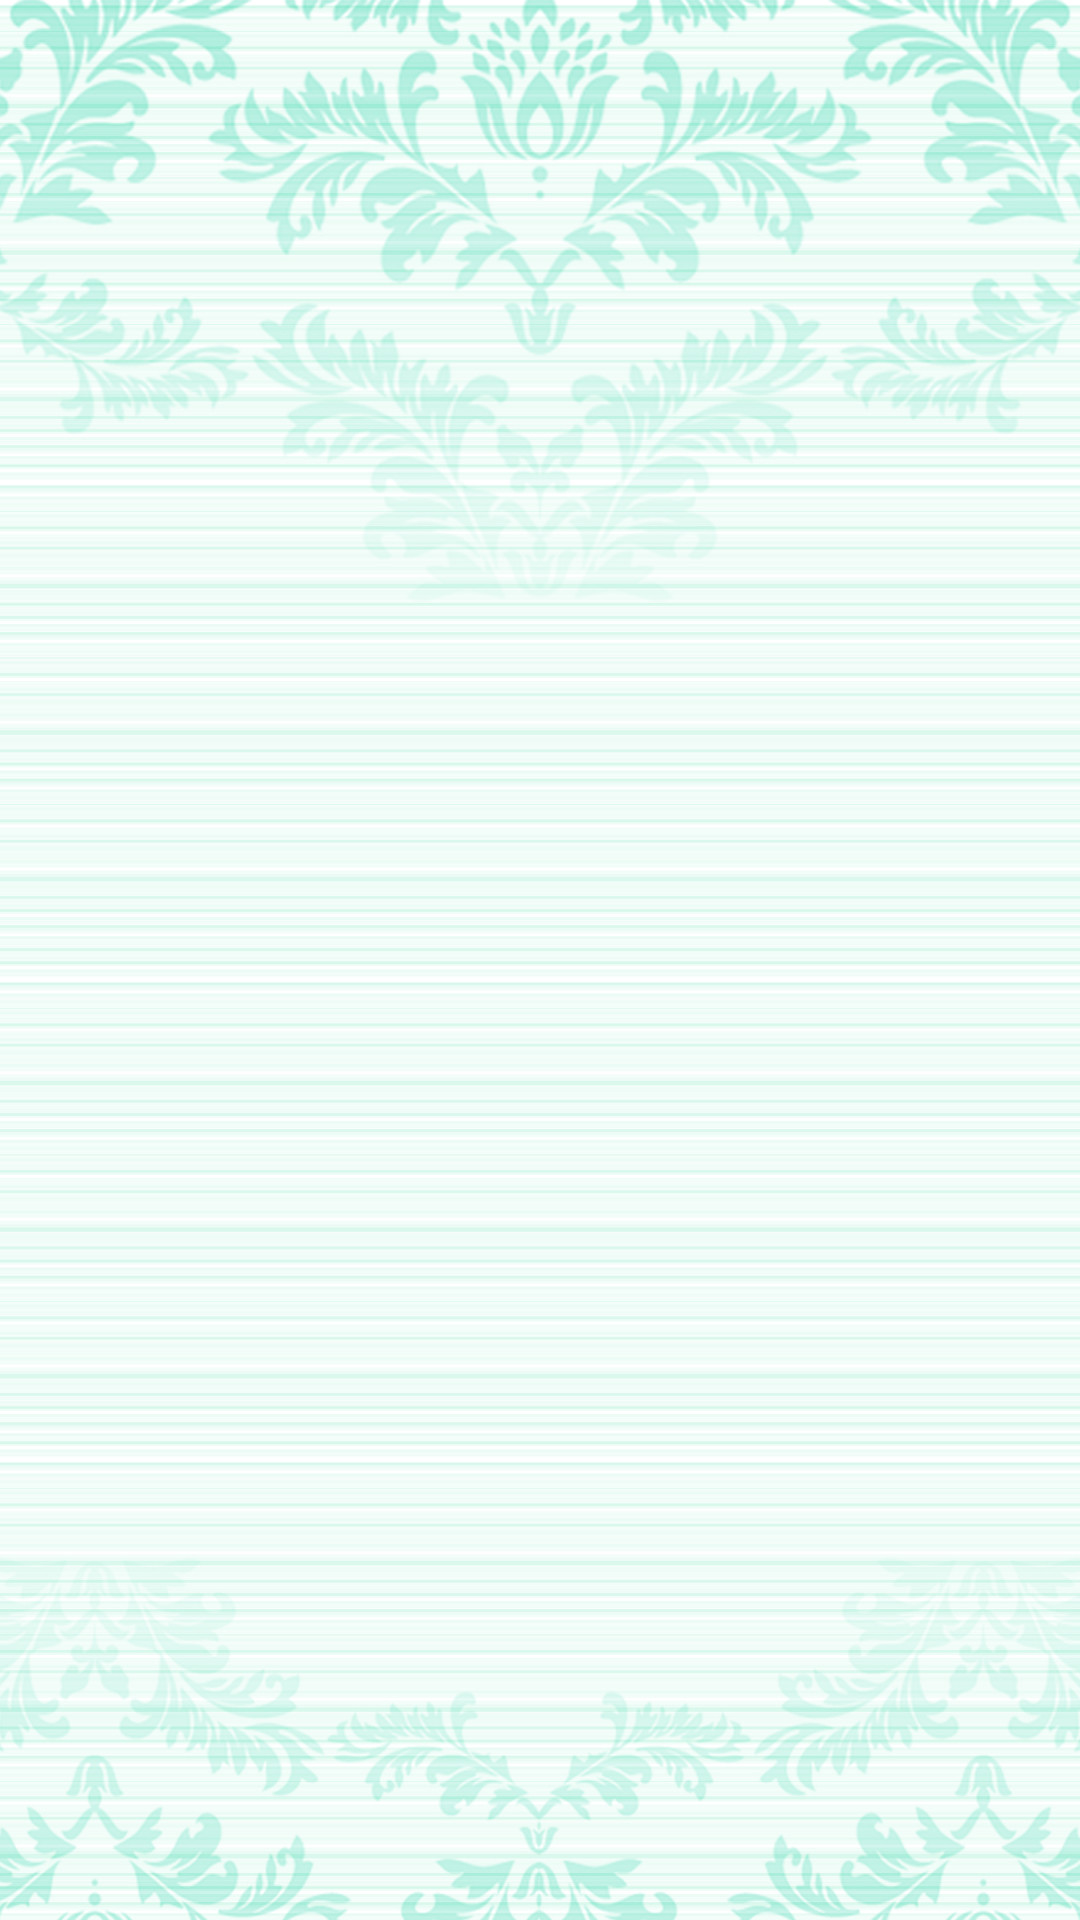 Pastel mint green ombre damask frame iPhone phone lock screen wallpaper  background